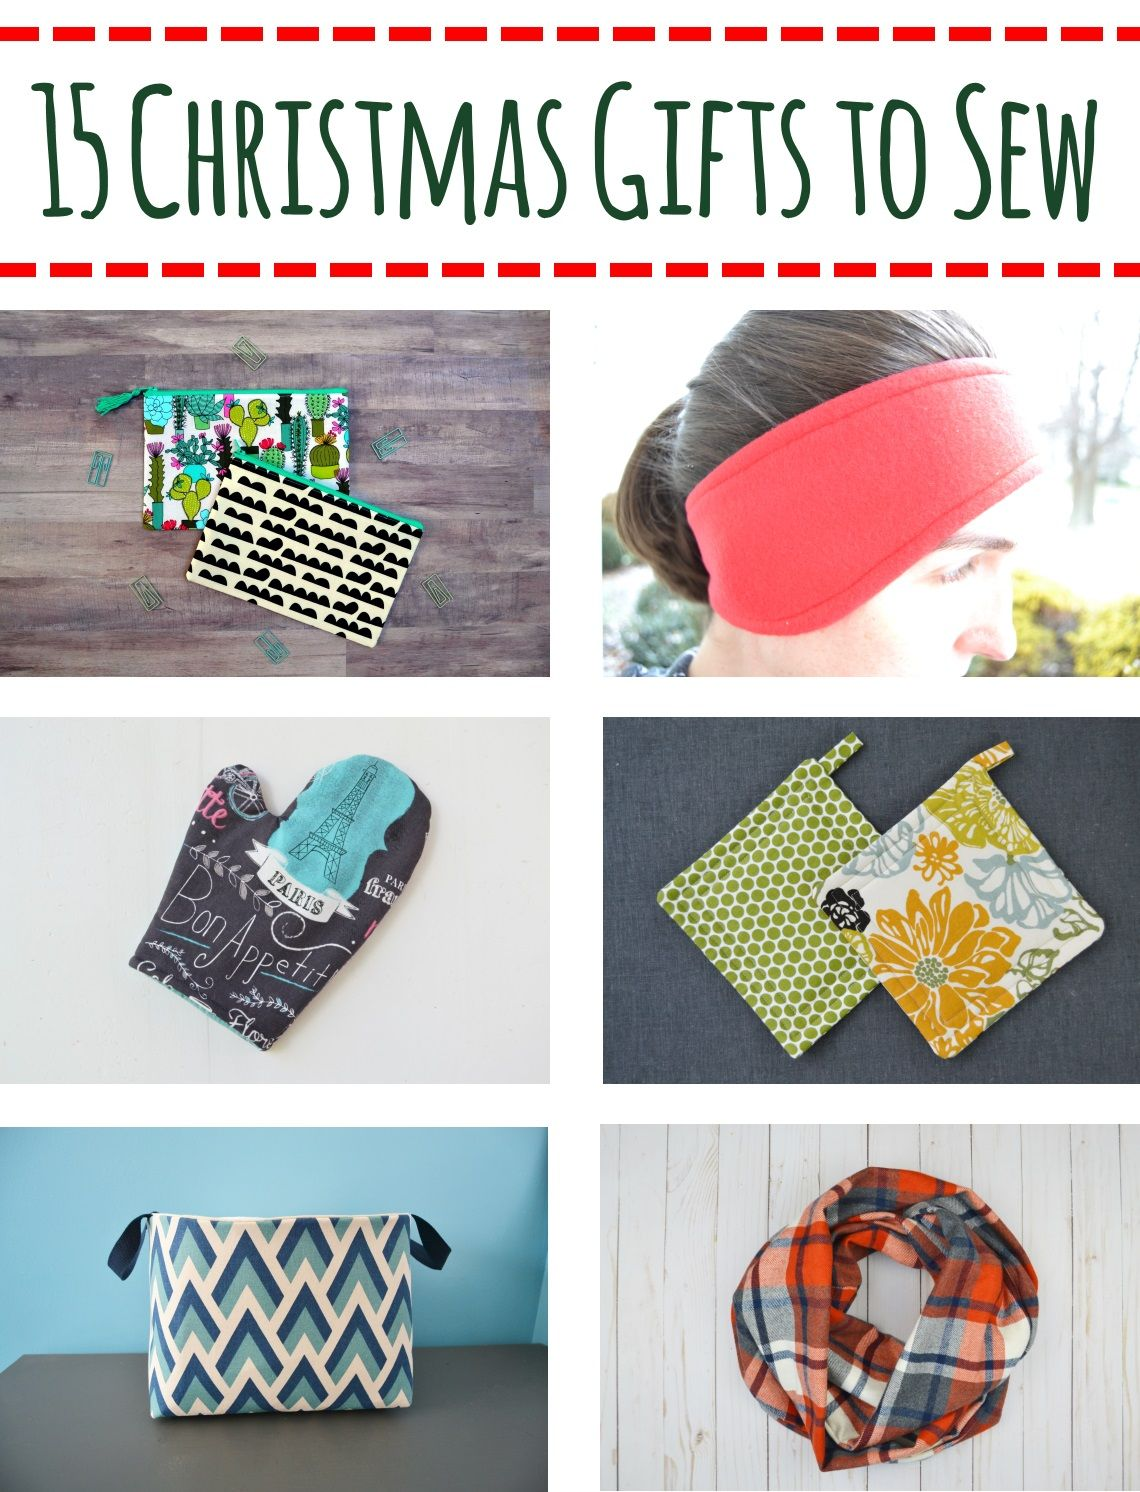 ideas for christmas gifts to sew with full tutorials for each